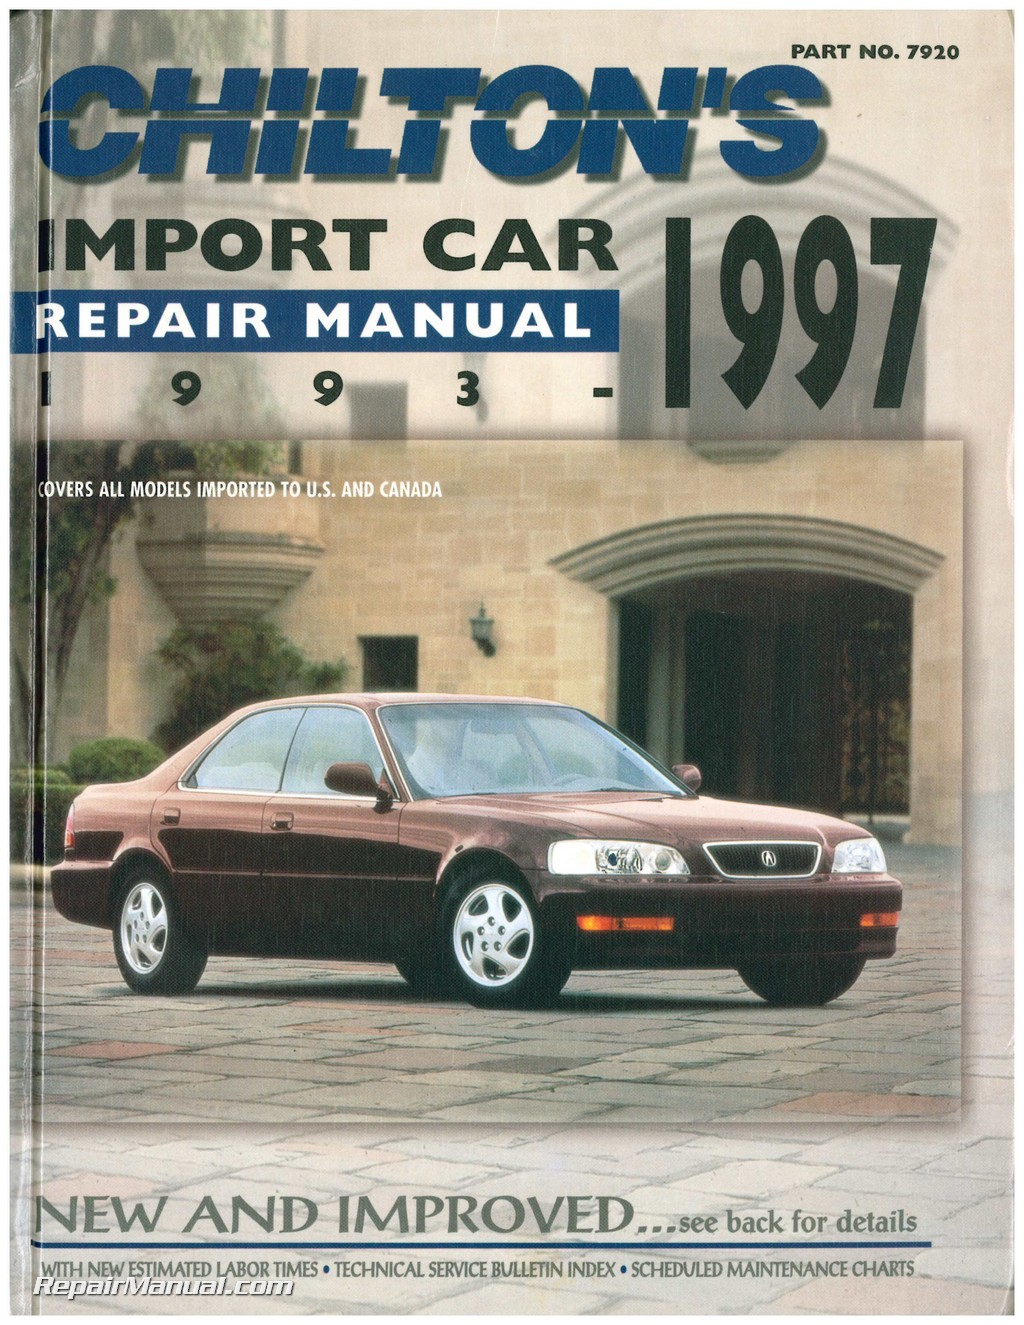 Used Chilton Import Car Repair Manual ...